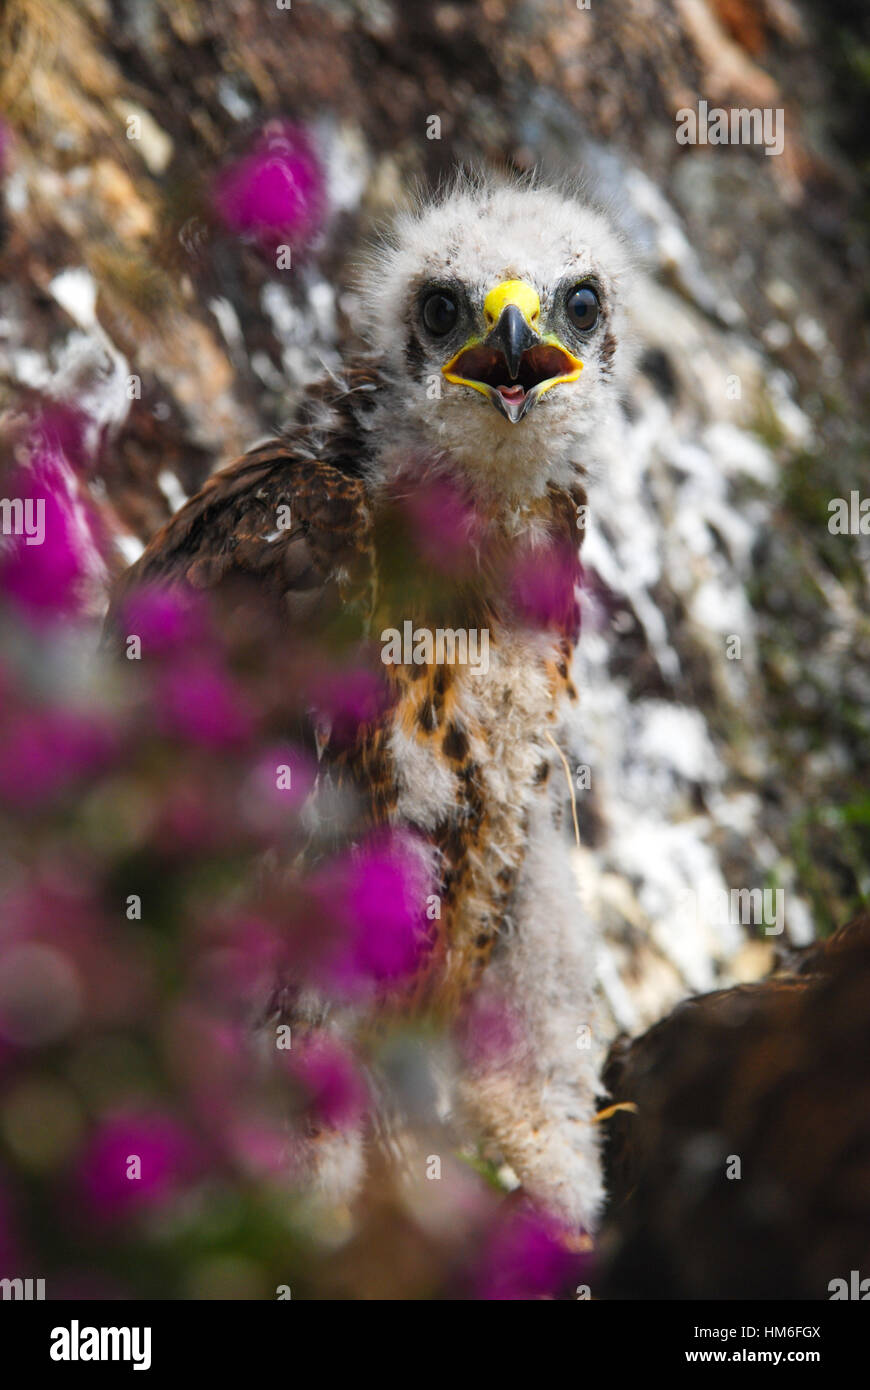 baby buzzard (buteo buteo) chick in nest with flowering purple bell heather (Erica cinerea) in the foreground, Isle - Stock Image